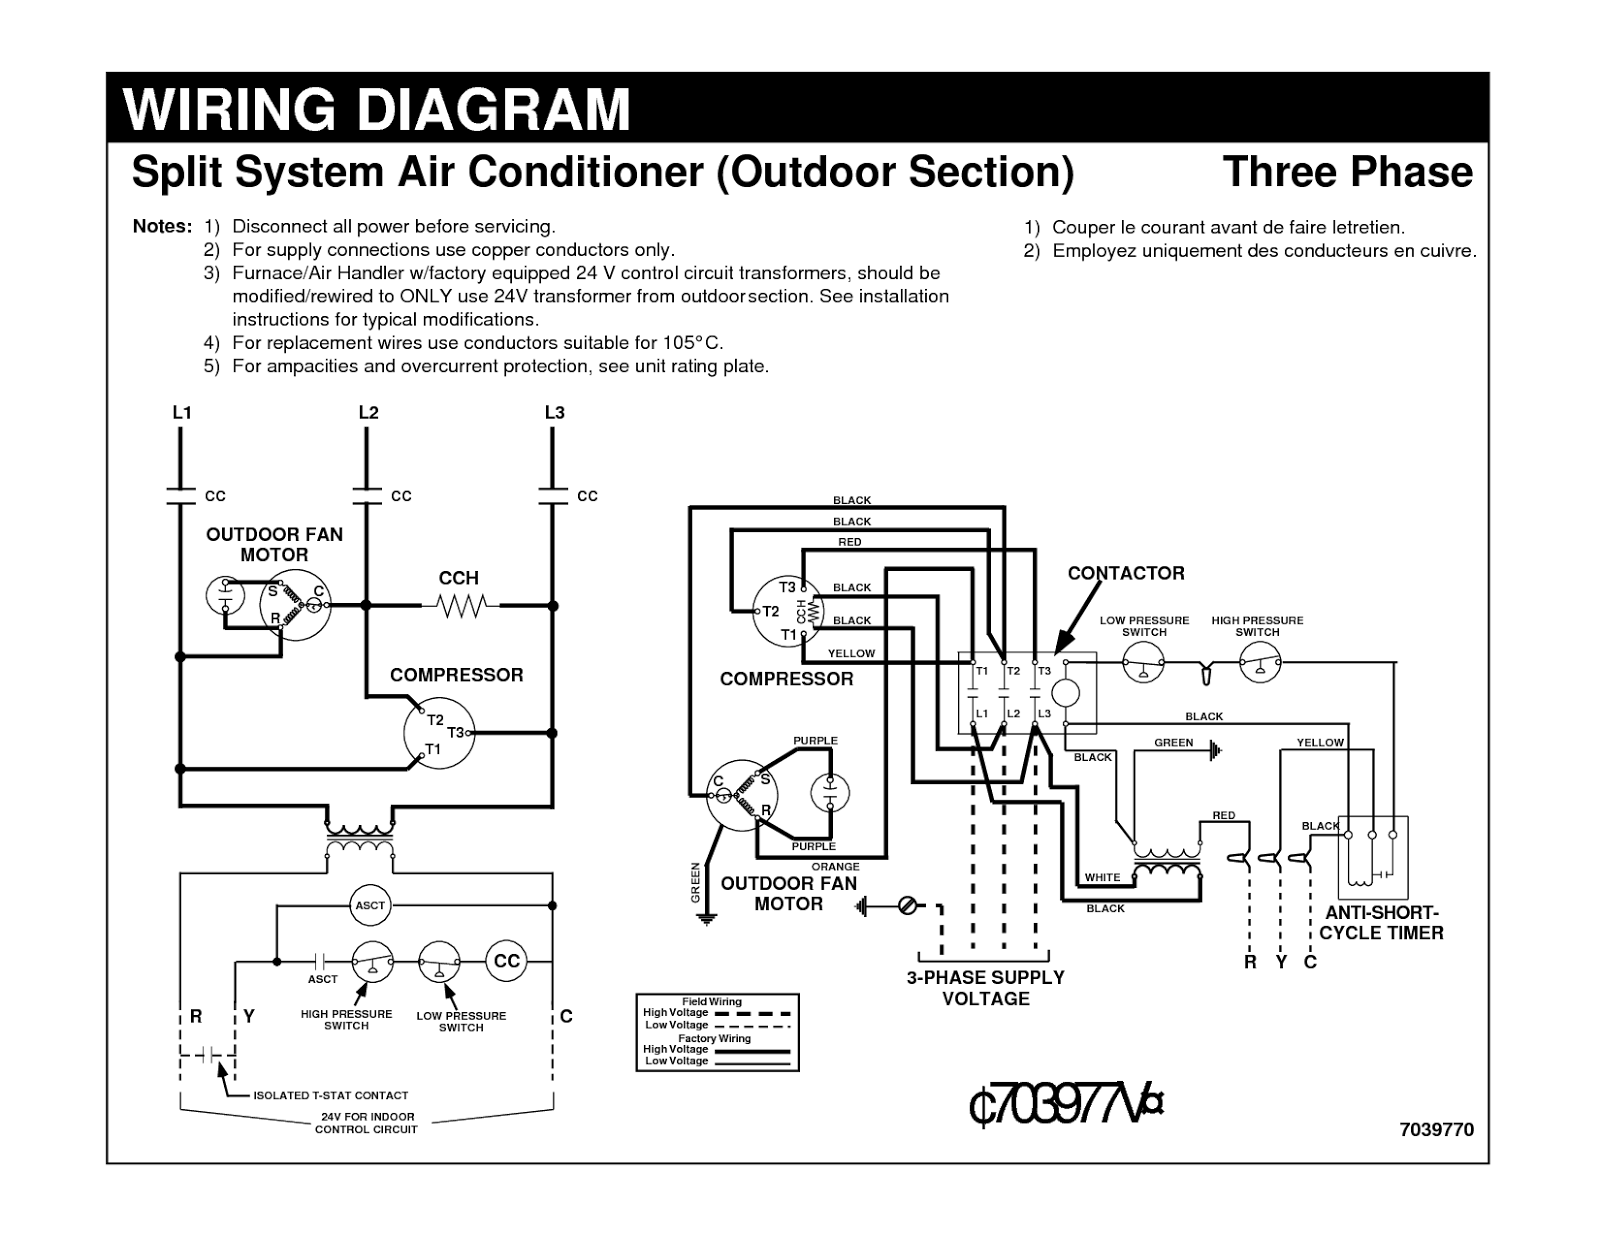 wiring+diagram+in+the+user+manual electrical wiring diagrams for air conditioning systems part one wiring diagram for central air conditioning at crackthecode.co